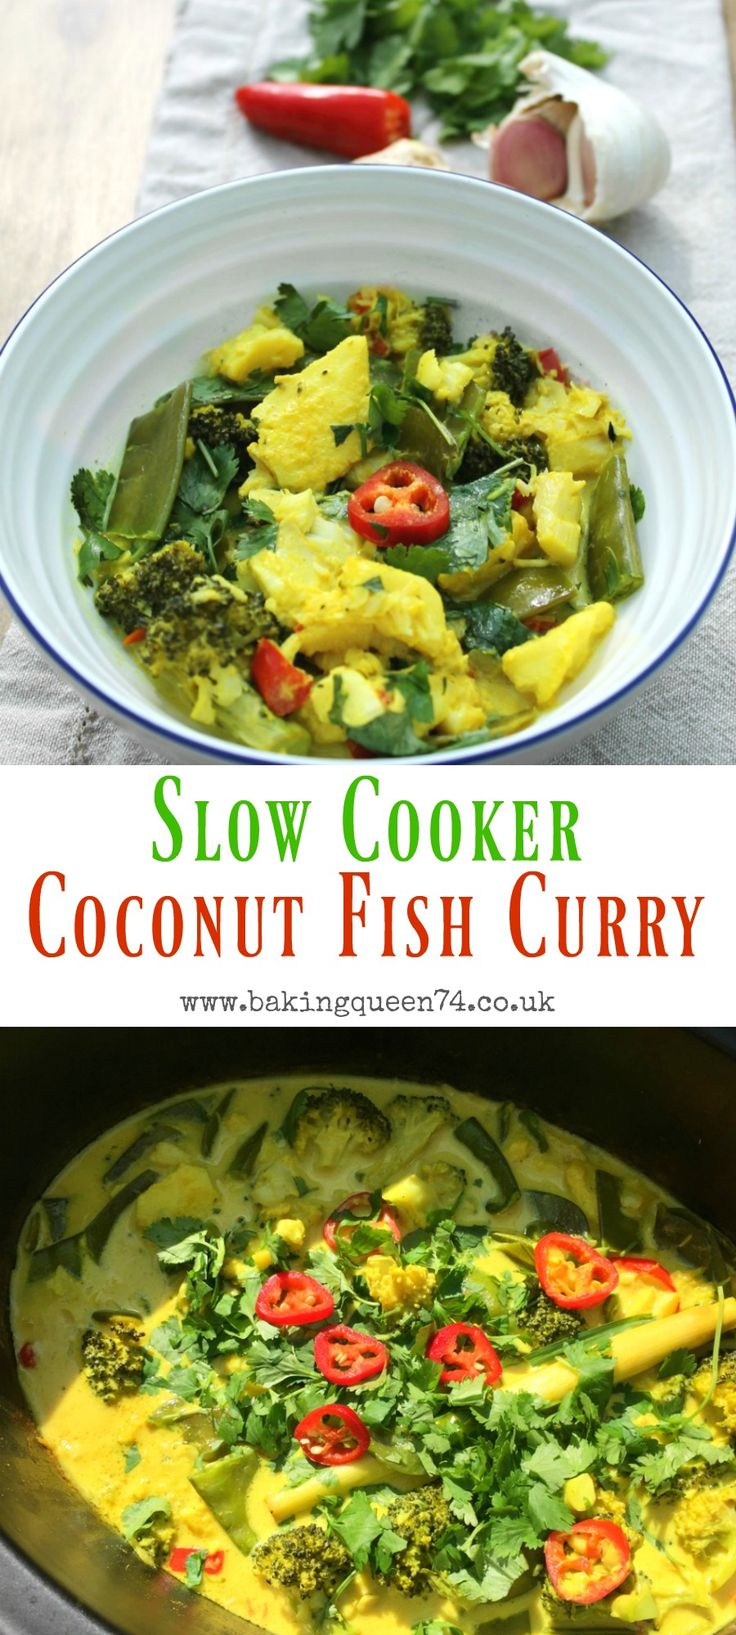 Slow cooker coconut fish curry – an easy to make dish, full of flavour, using yo…